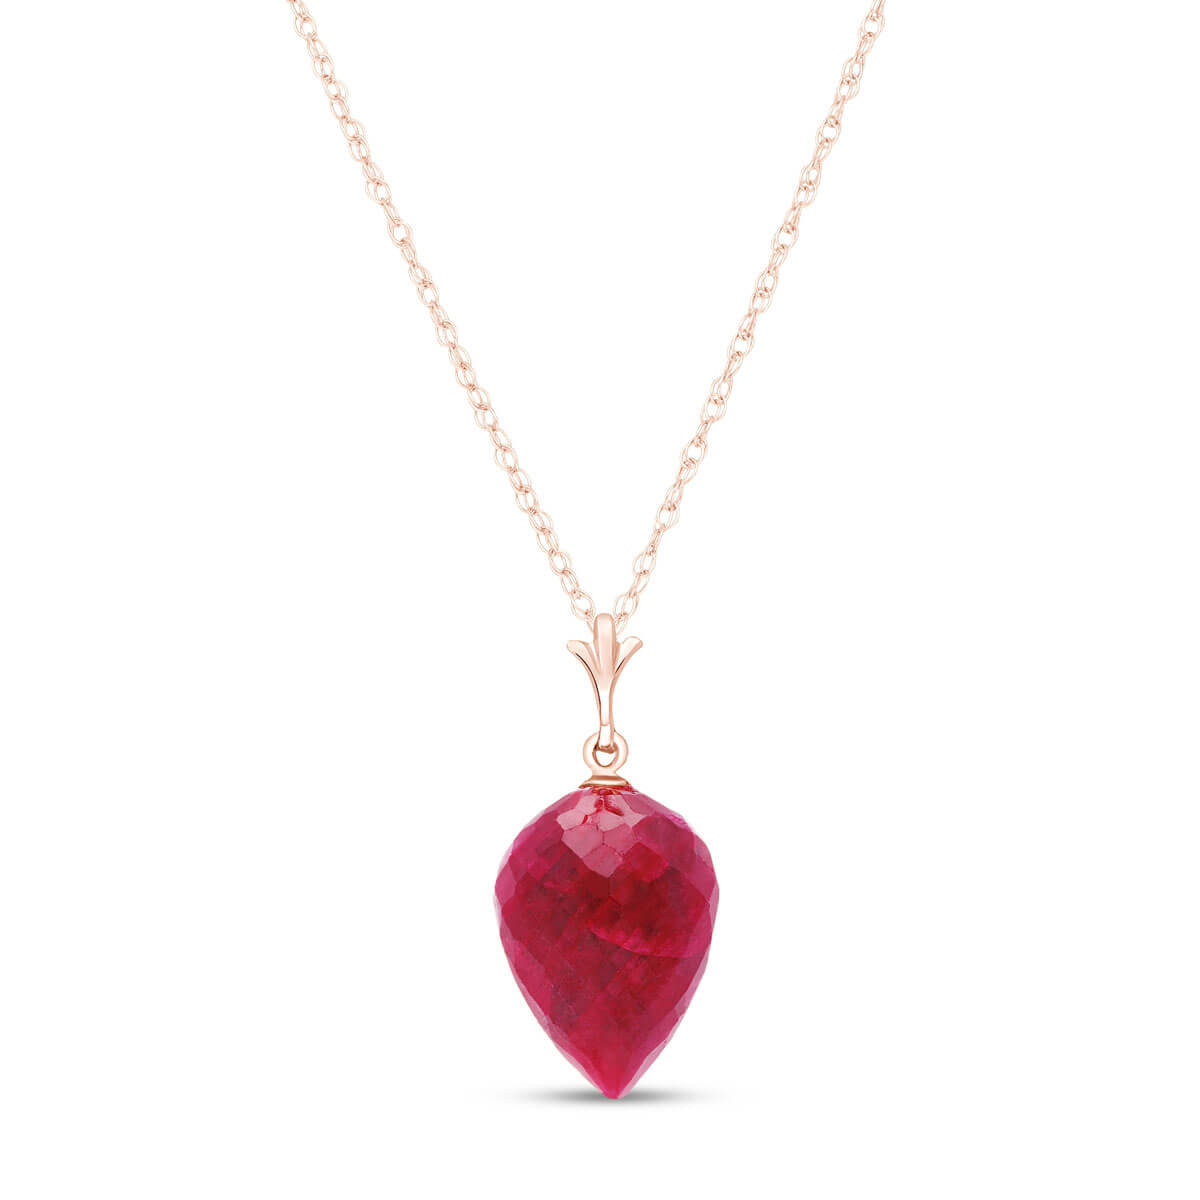 Ruby Briolette Pendant Necklace 13 ct in 9ct Rose Gold